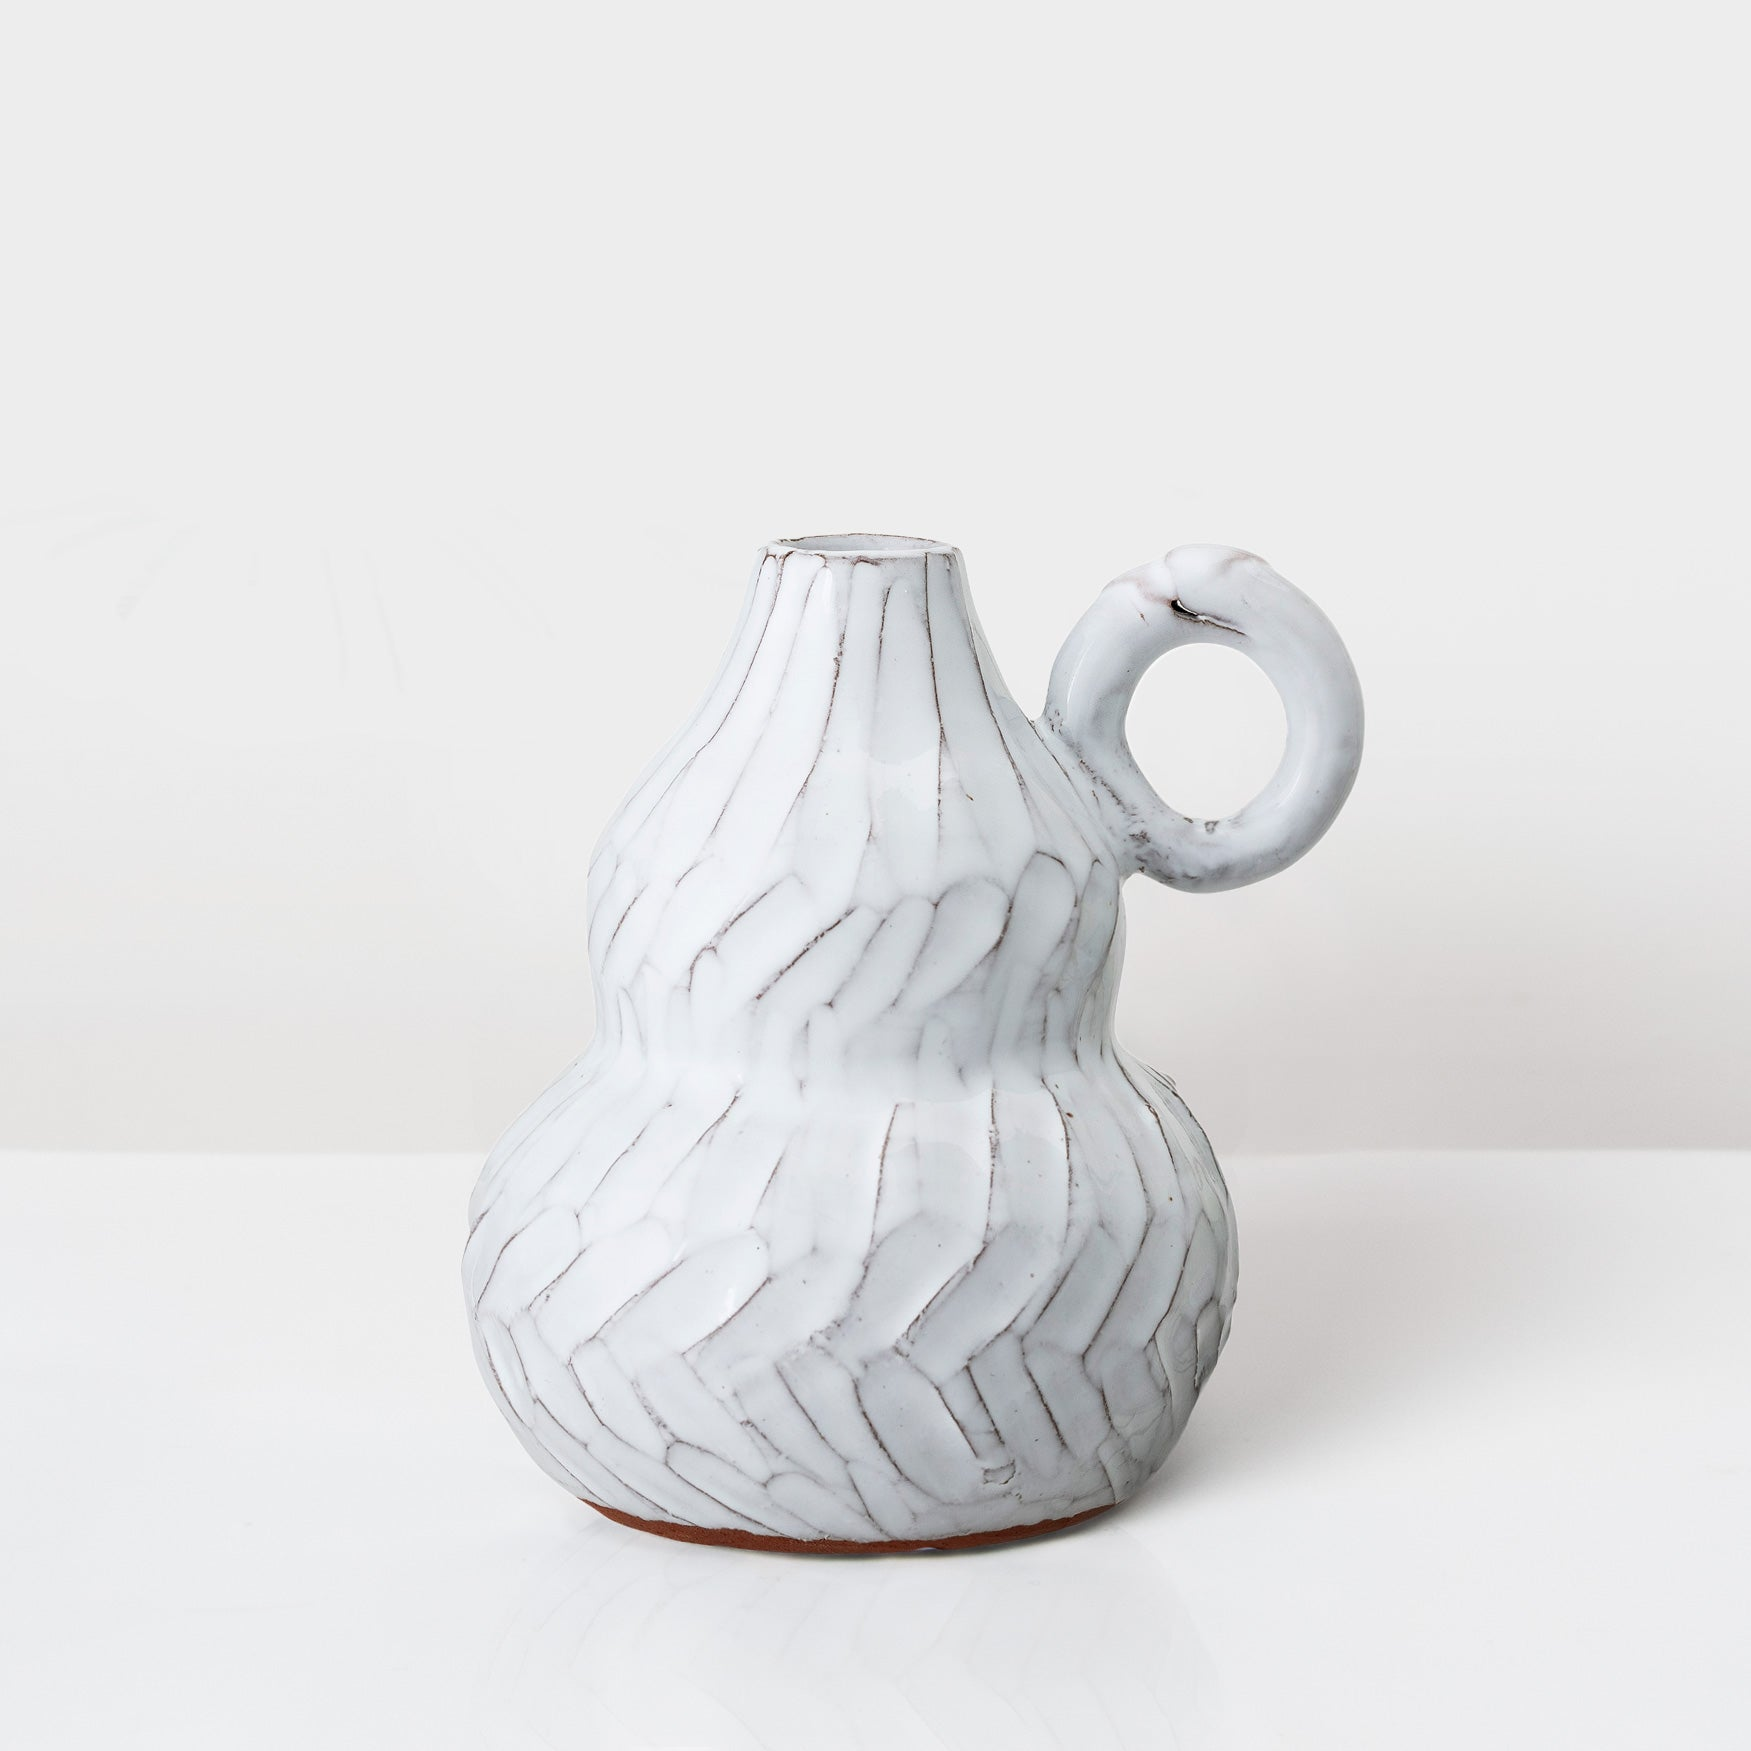 White glazed terracotta decorative vase